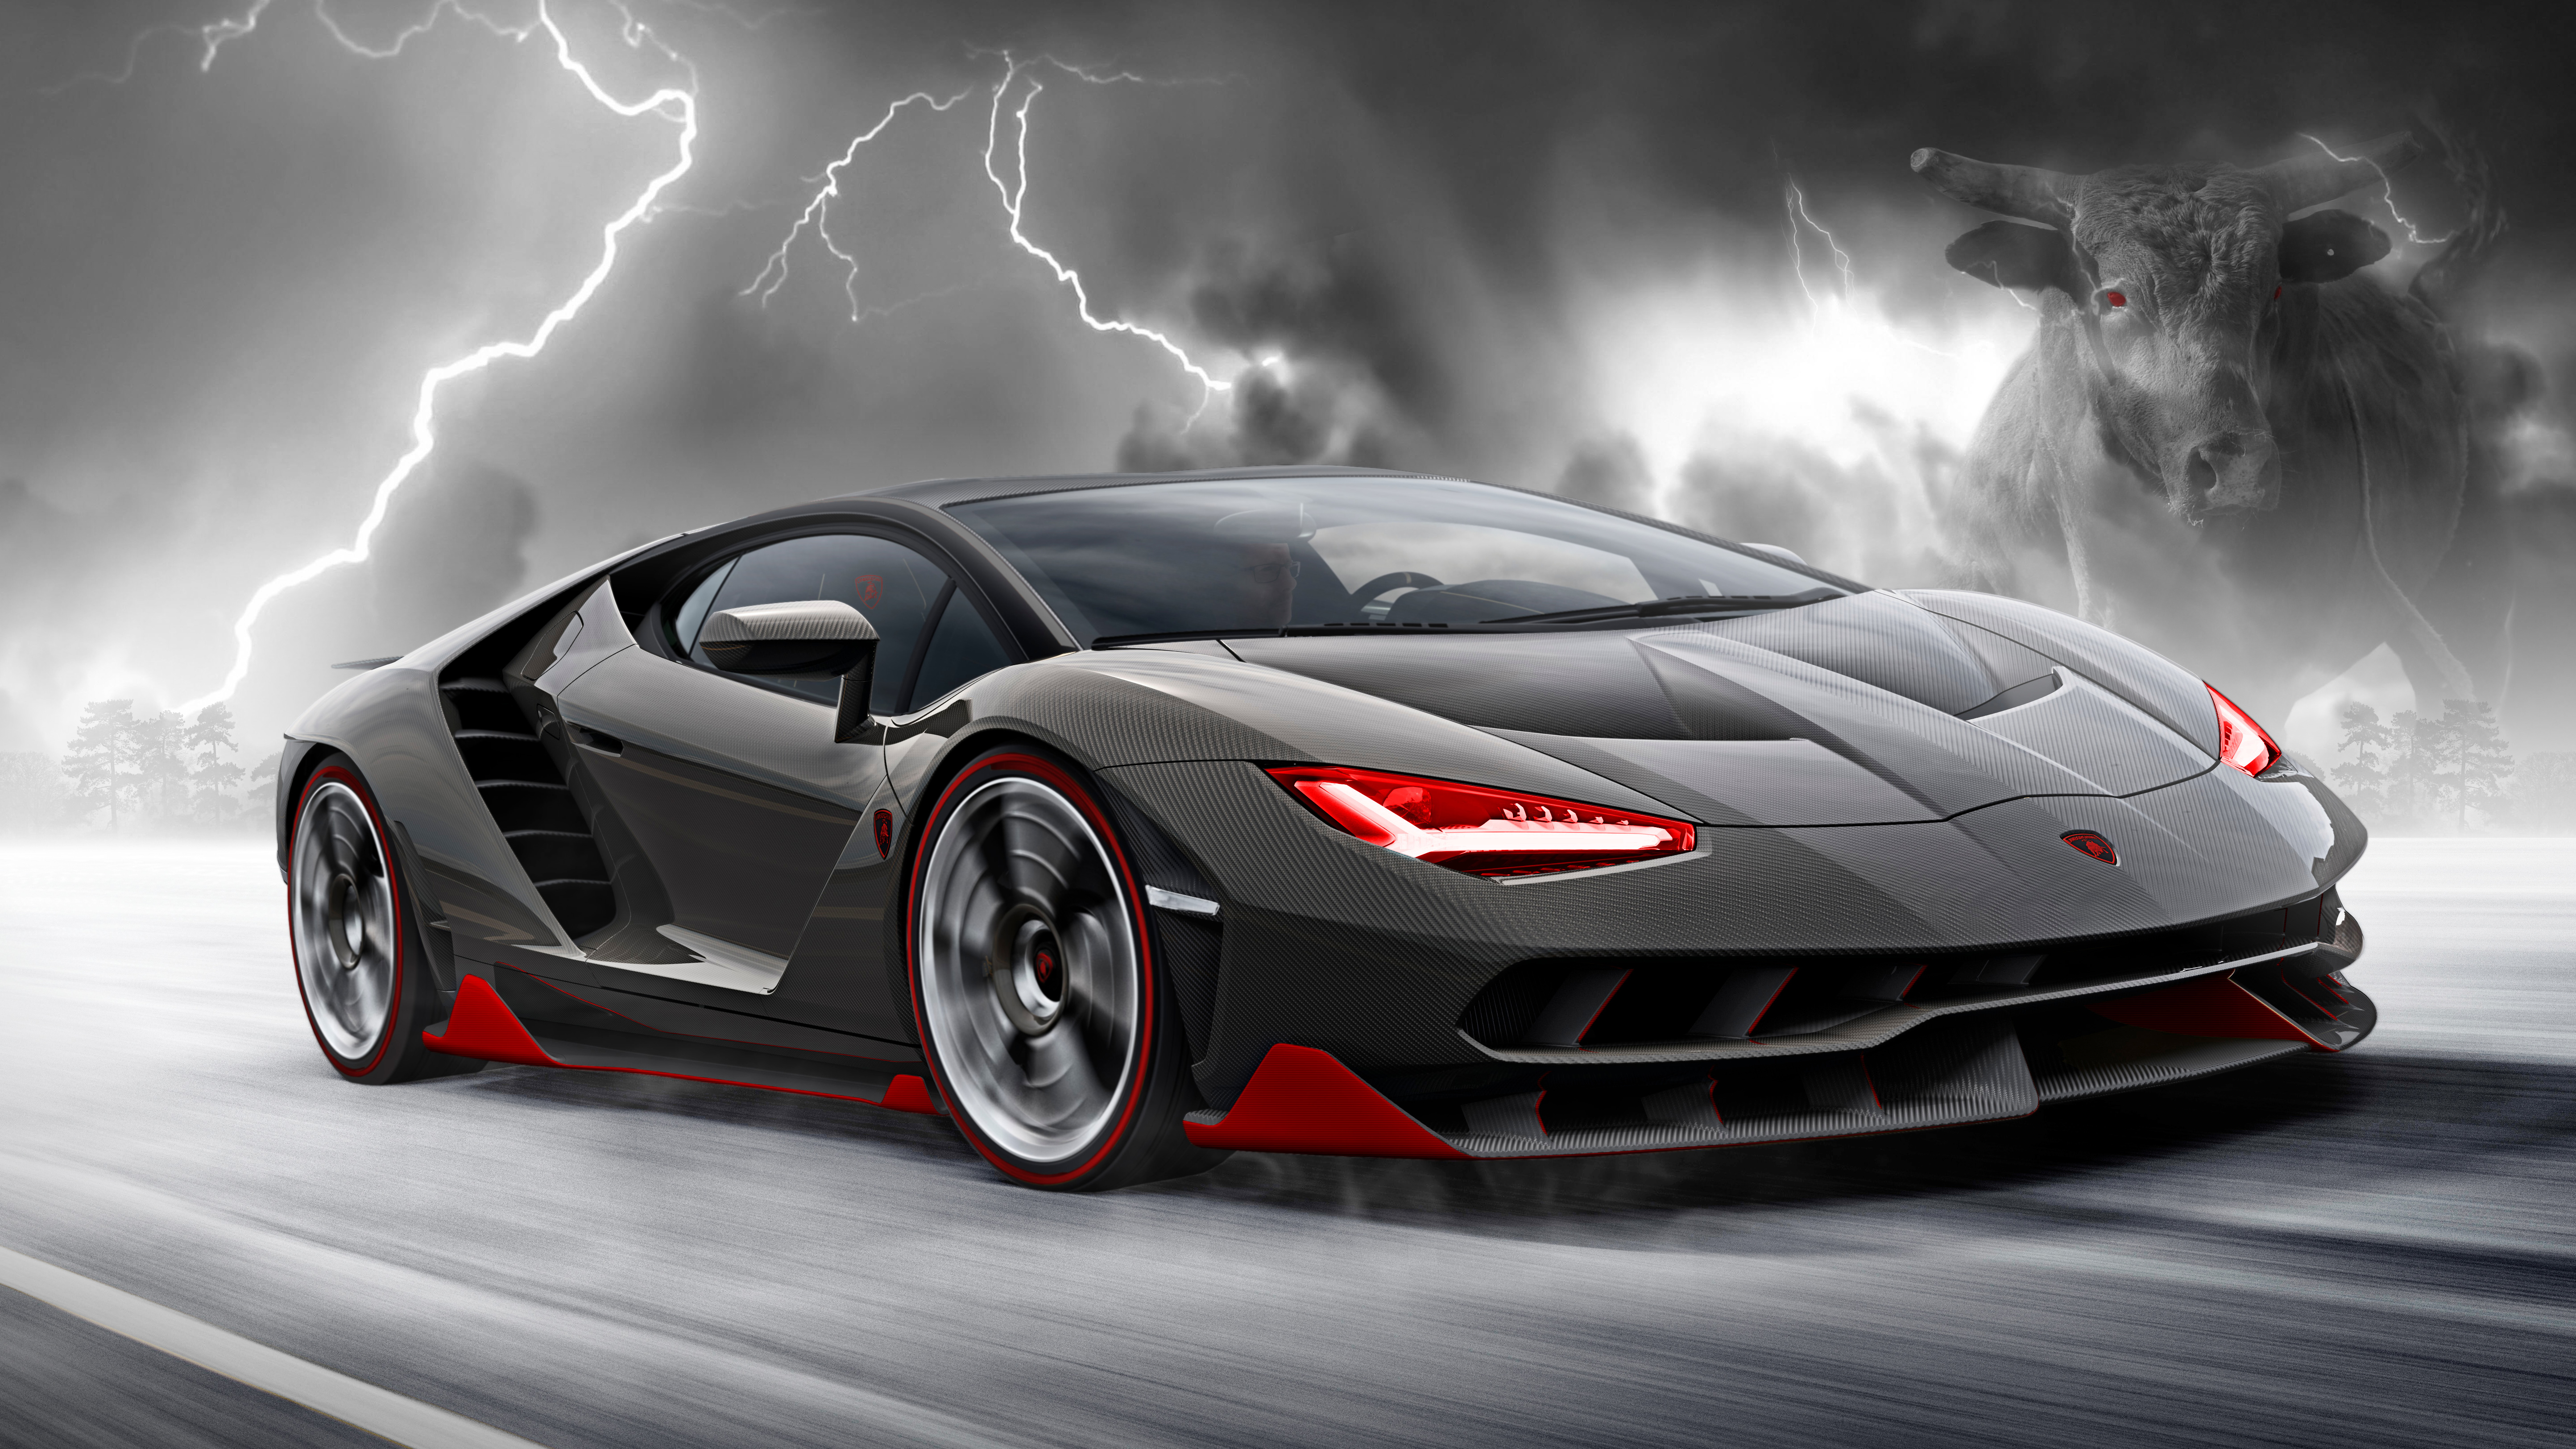 Lamborghini centenario 5k hd cars 4k wallpapers images - Wallpaper hd 4k car ...